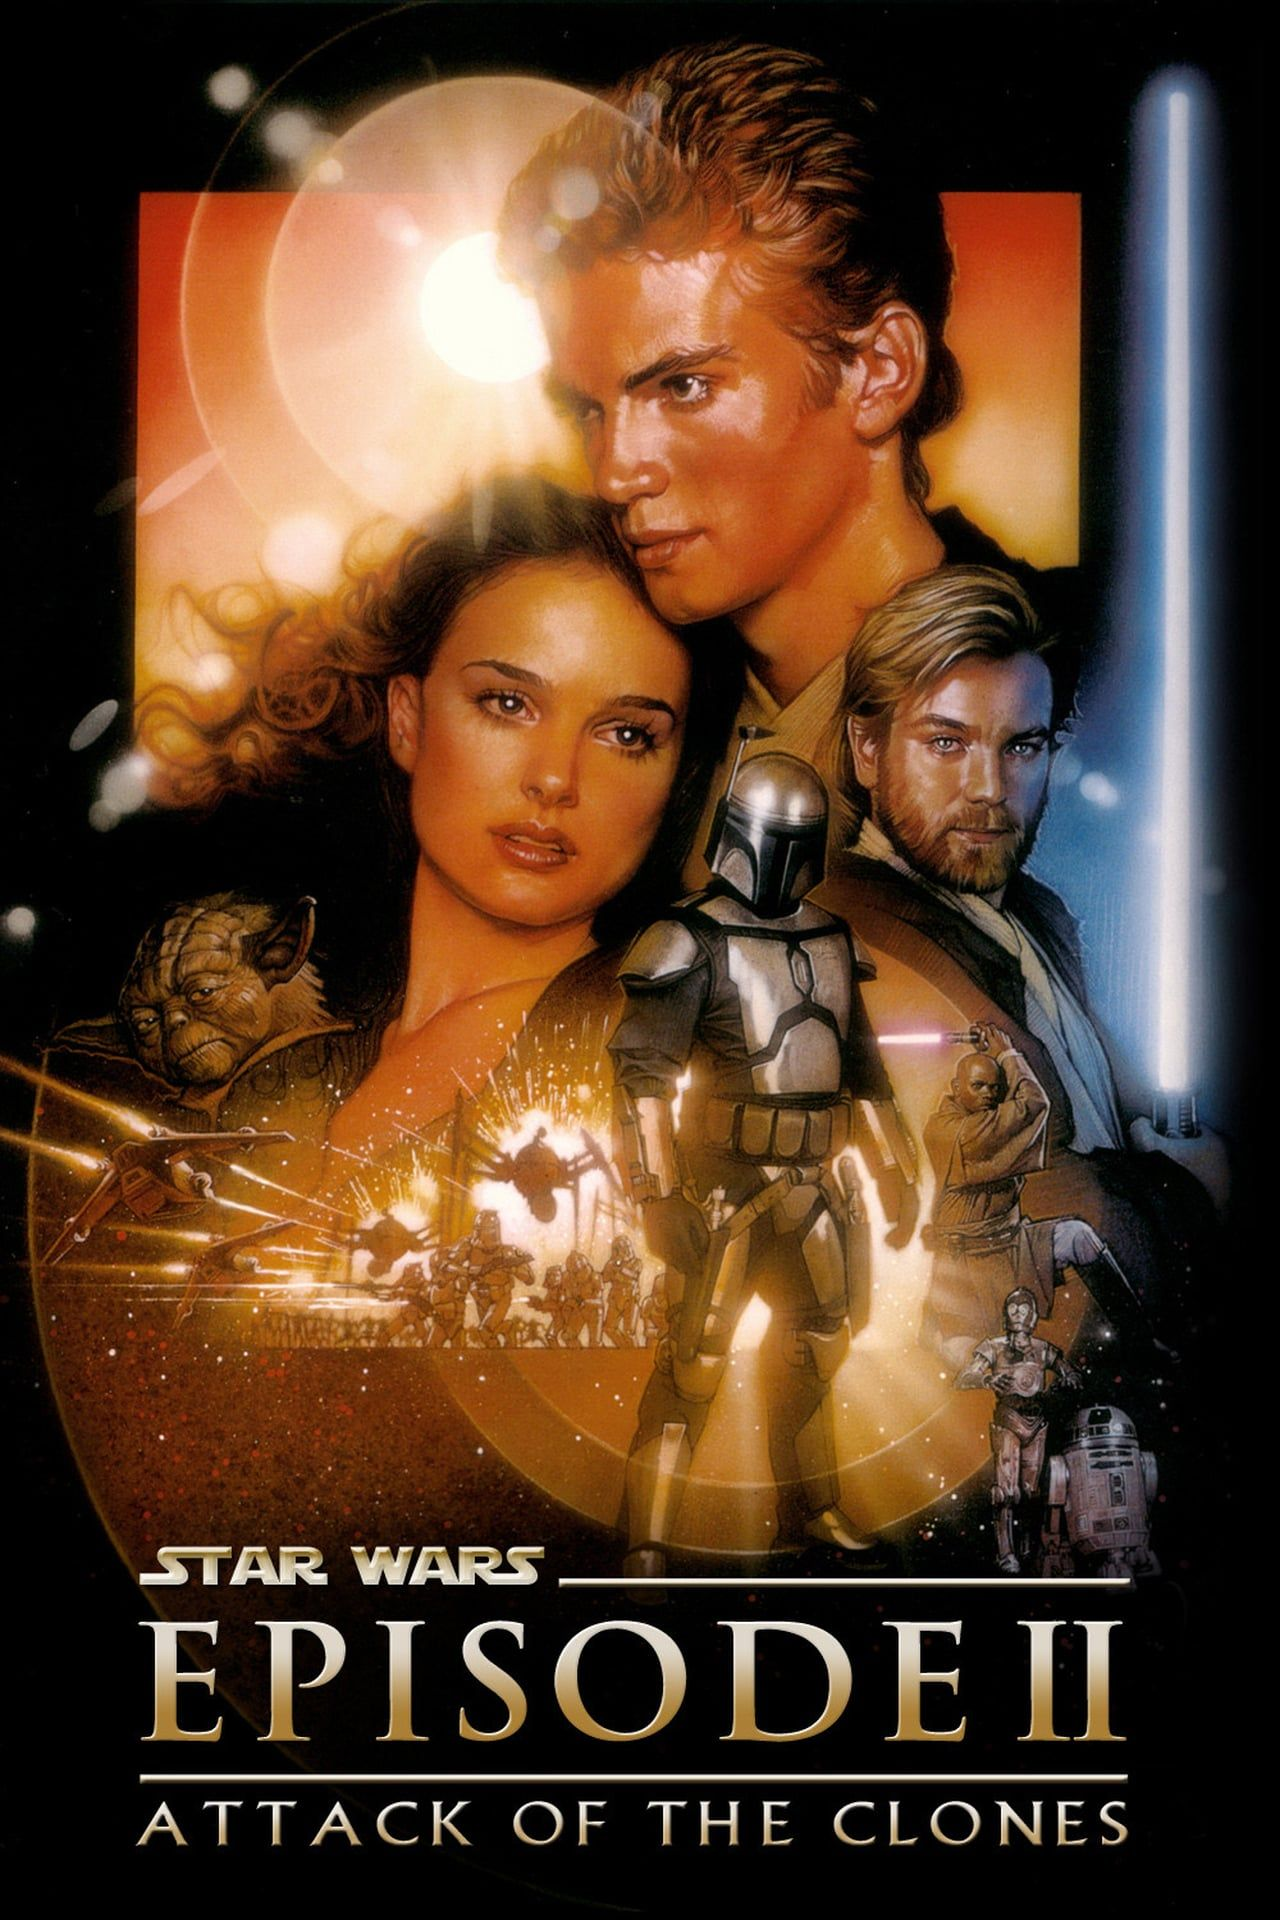 Star Wars 2 Streaming Hd : streaming, Episode, Attack, Clones,, Clones